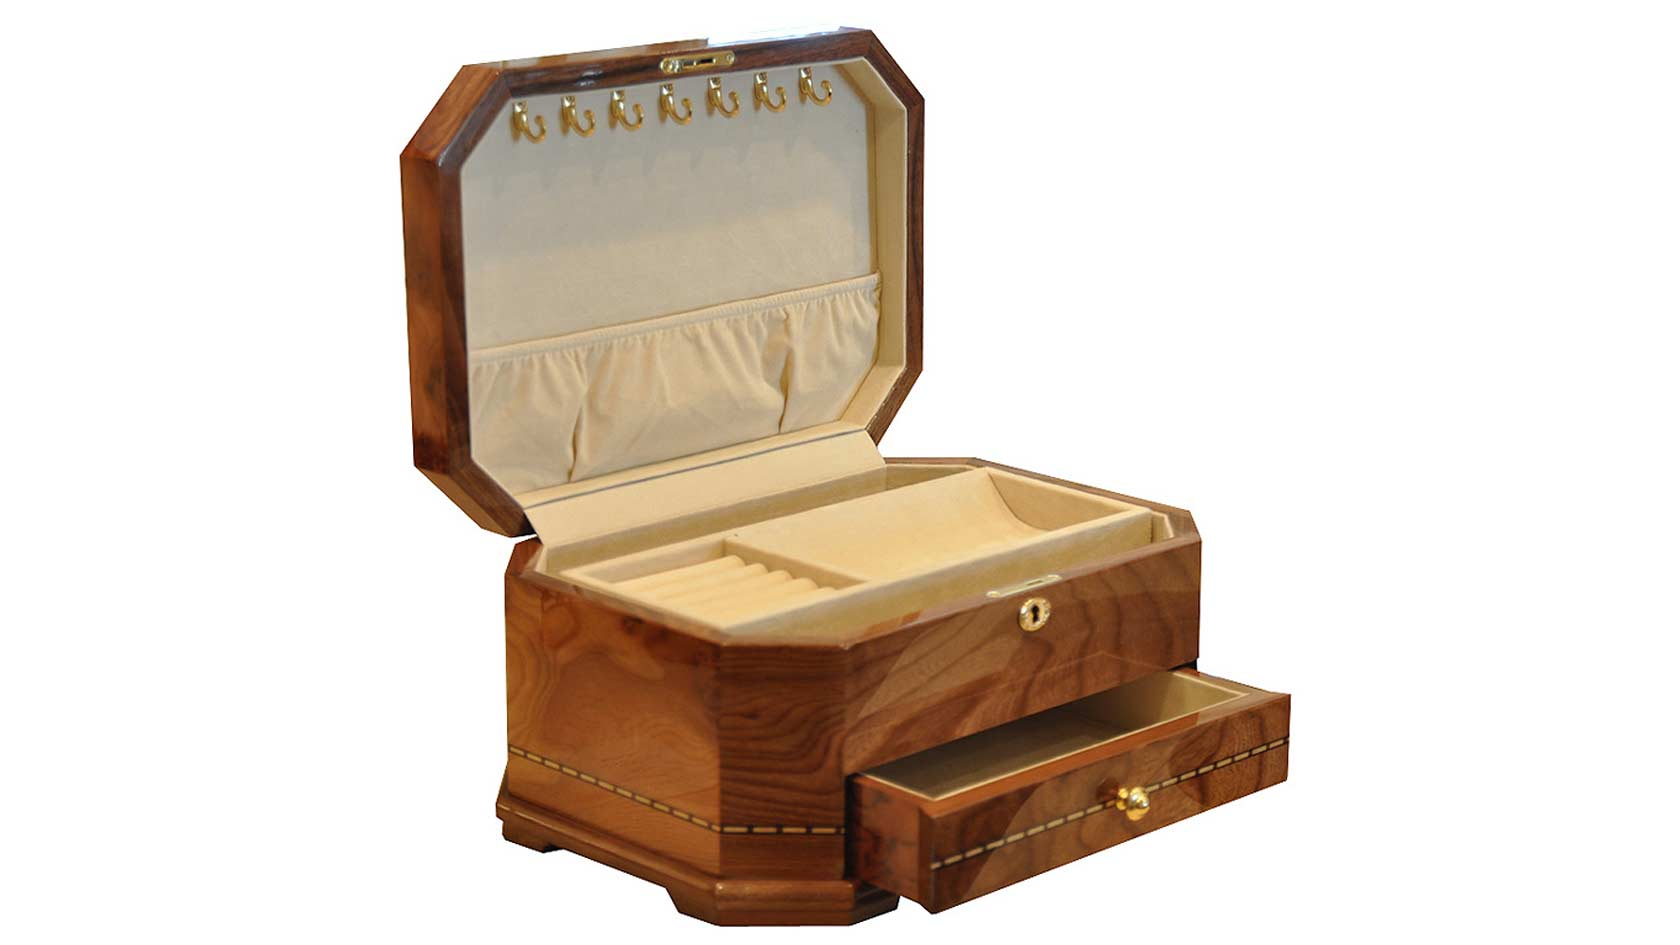 Walnut Burl Lacquered Jewelry Chest